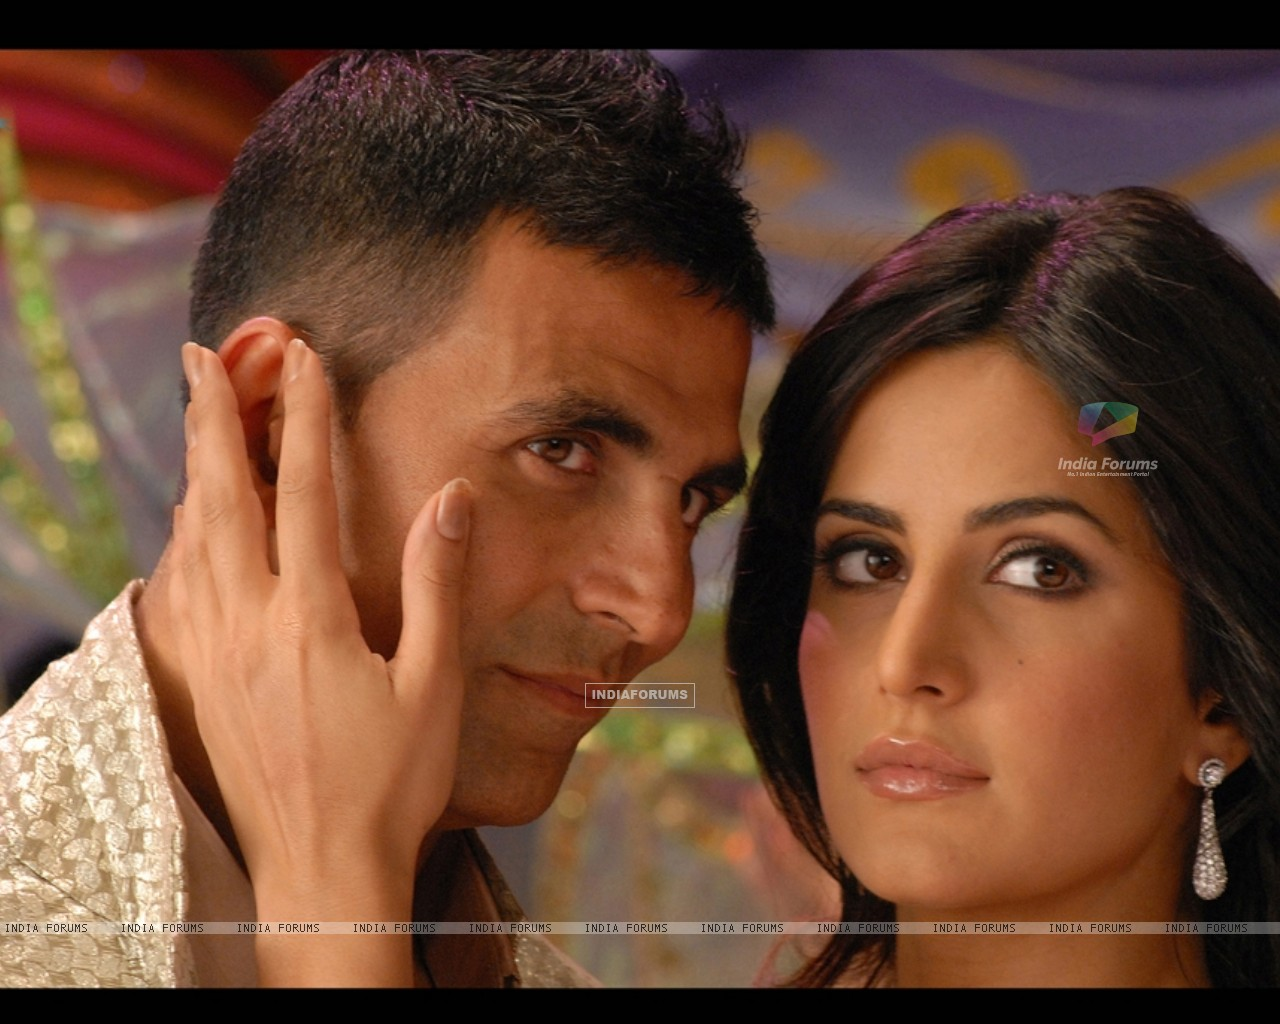 Still image of Akshay Kumar and Katrina Kaif (38746) size:1280x1024